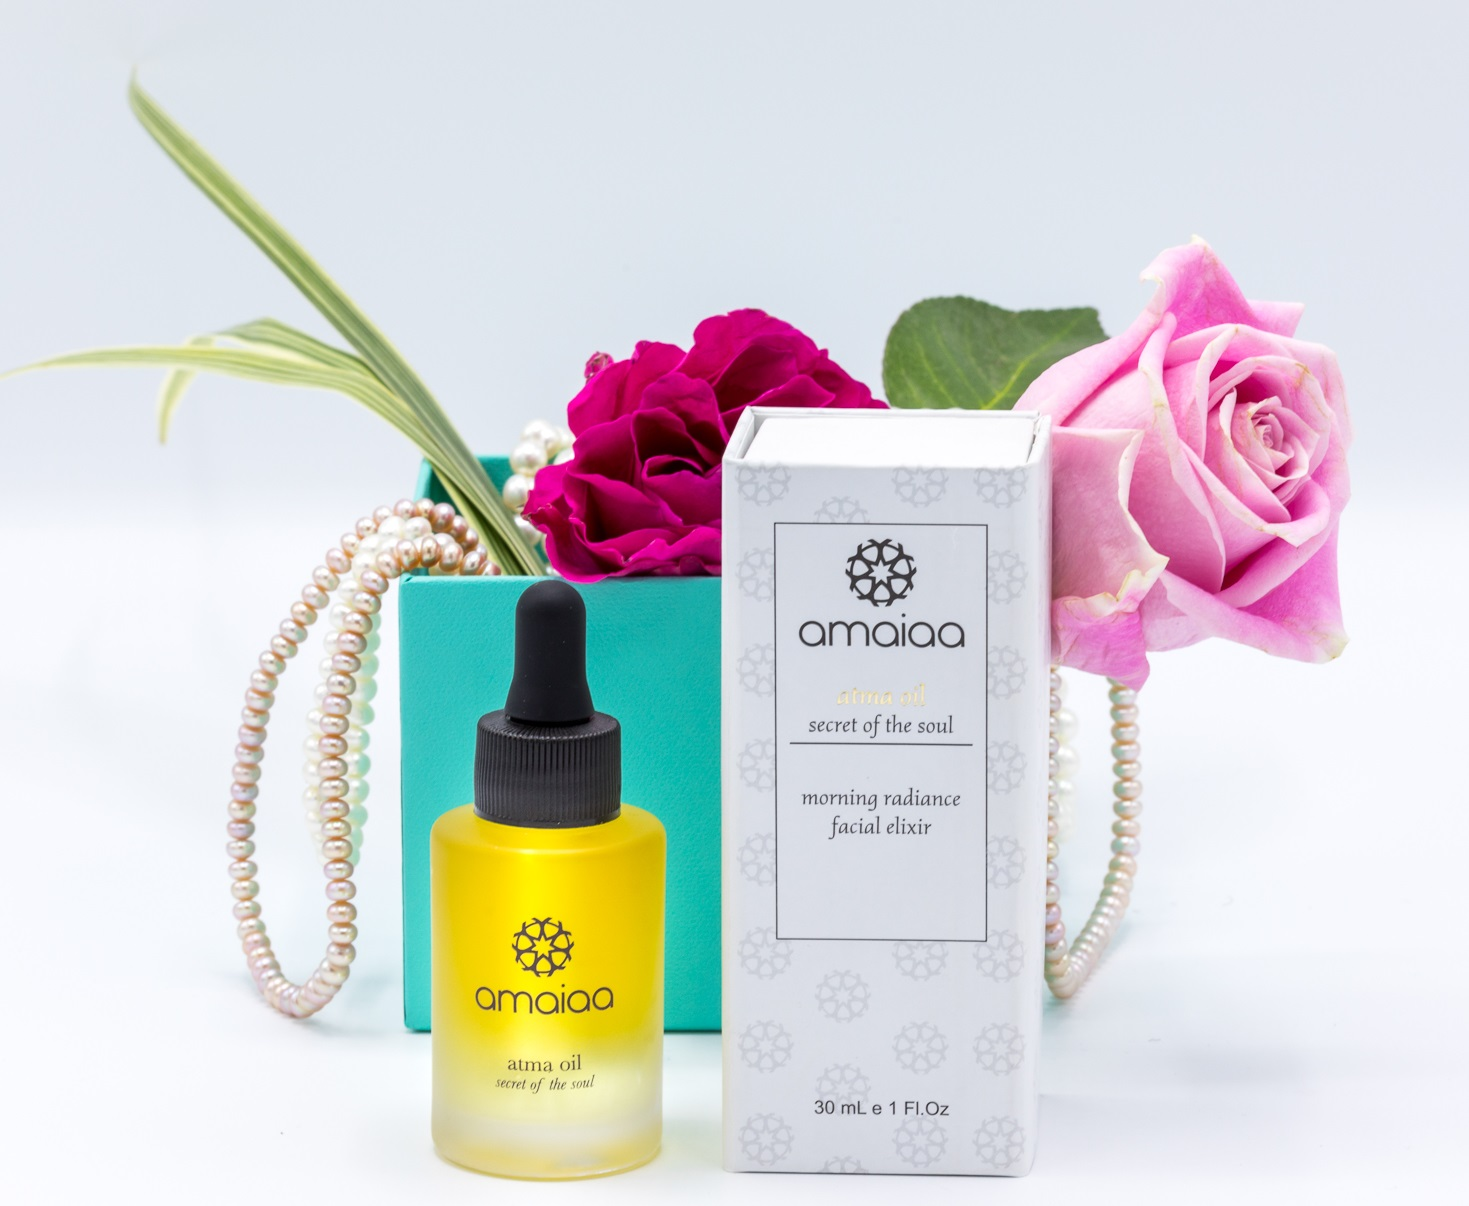 atma facial oil for night time with box and roses